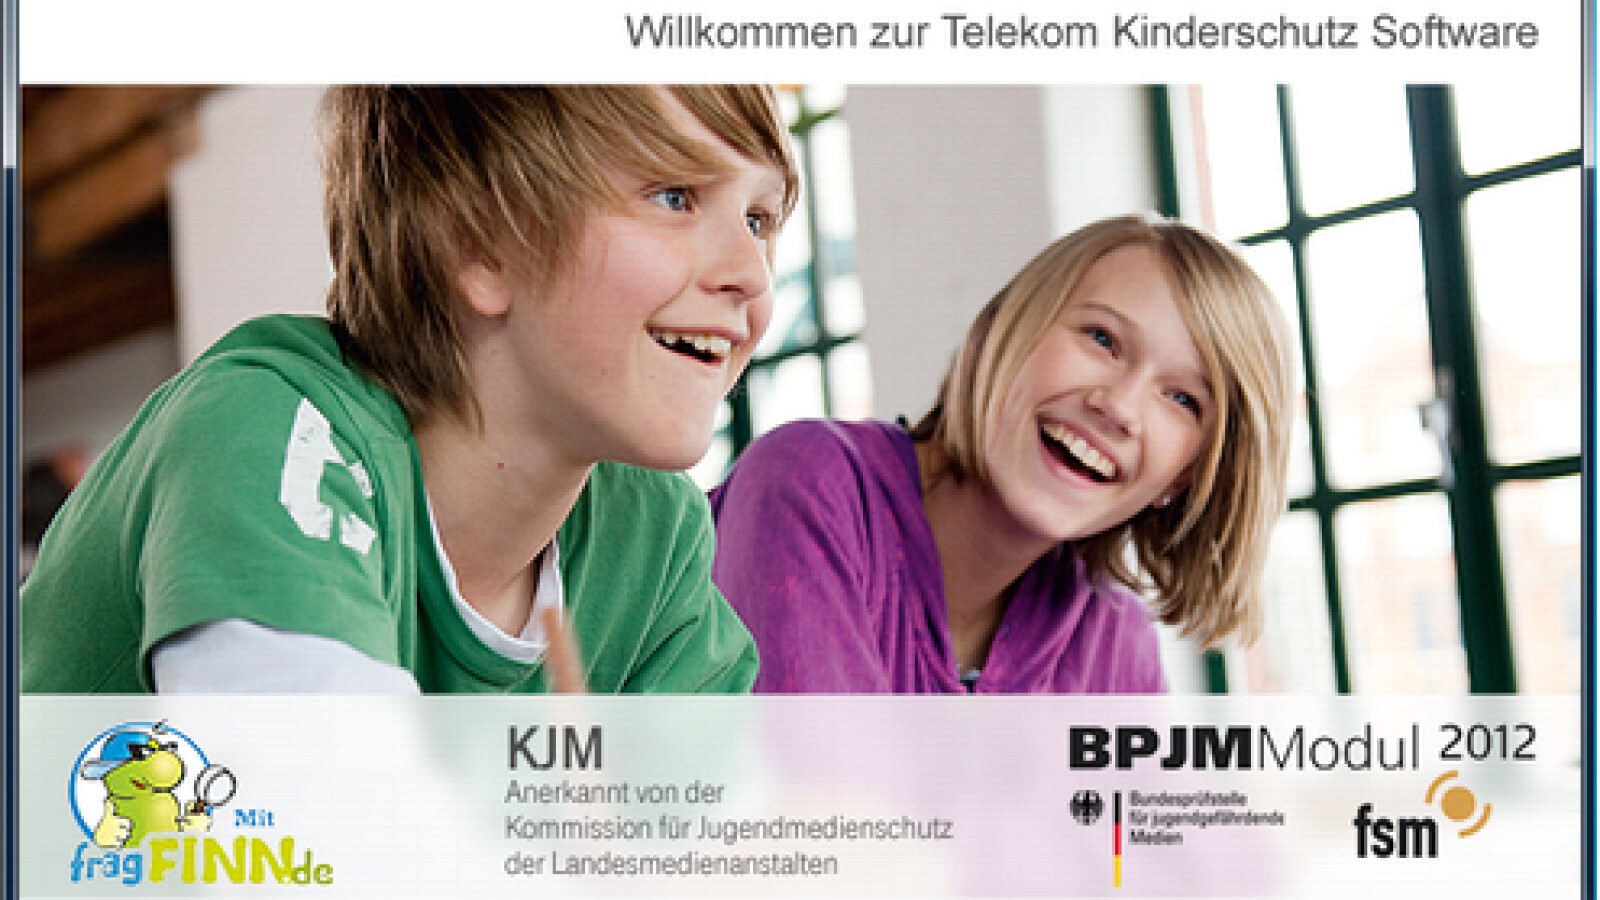 telekom kinderschutz software so funktioniert die internetkontrolle netzwelt. Black Bedroom Furniture Sets. Home Design Ideas